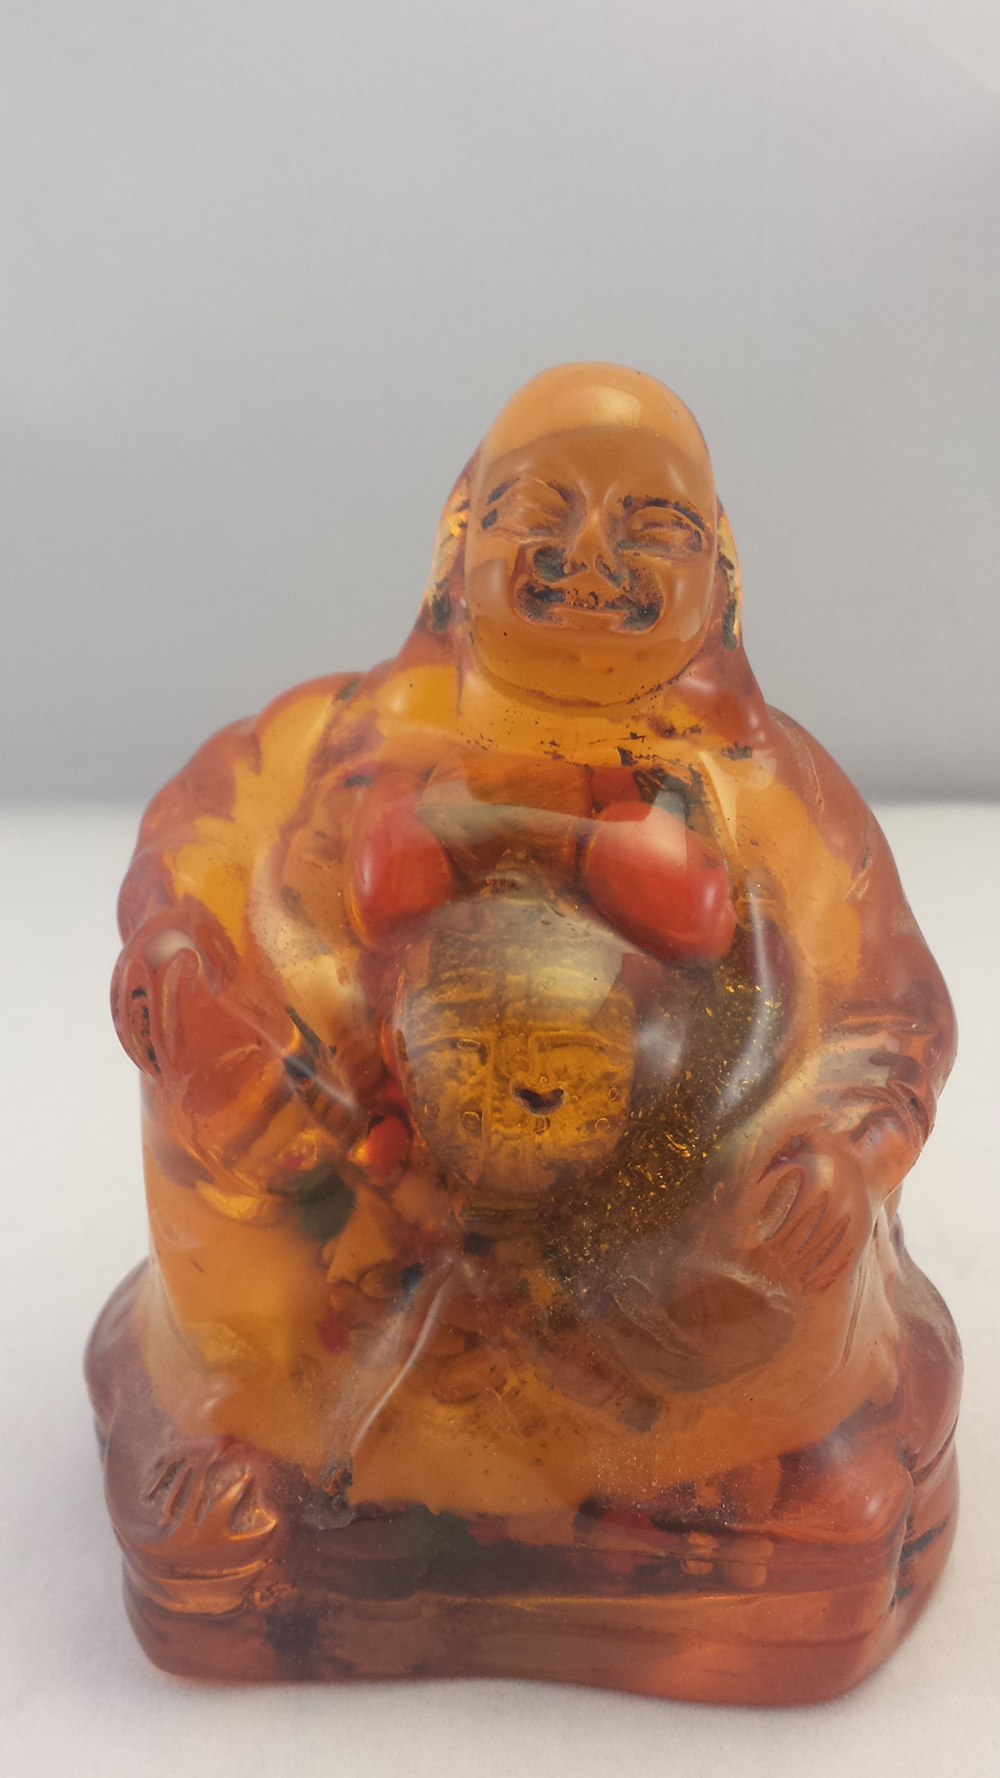 Embedded Acrylic Laughing Buddha